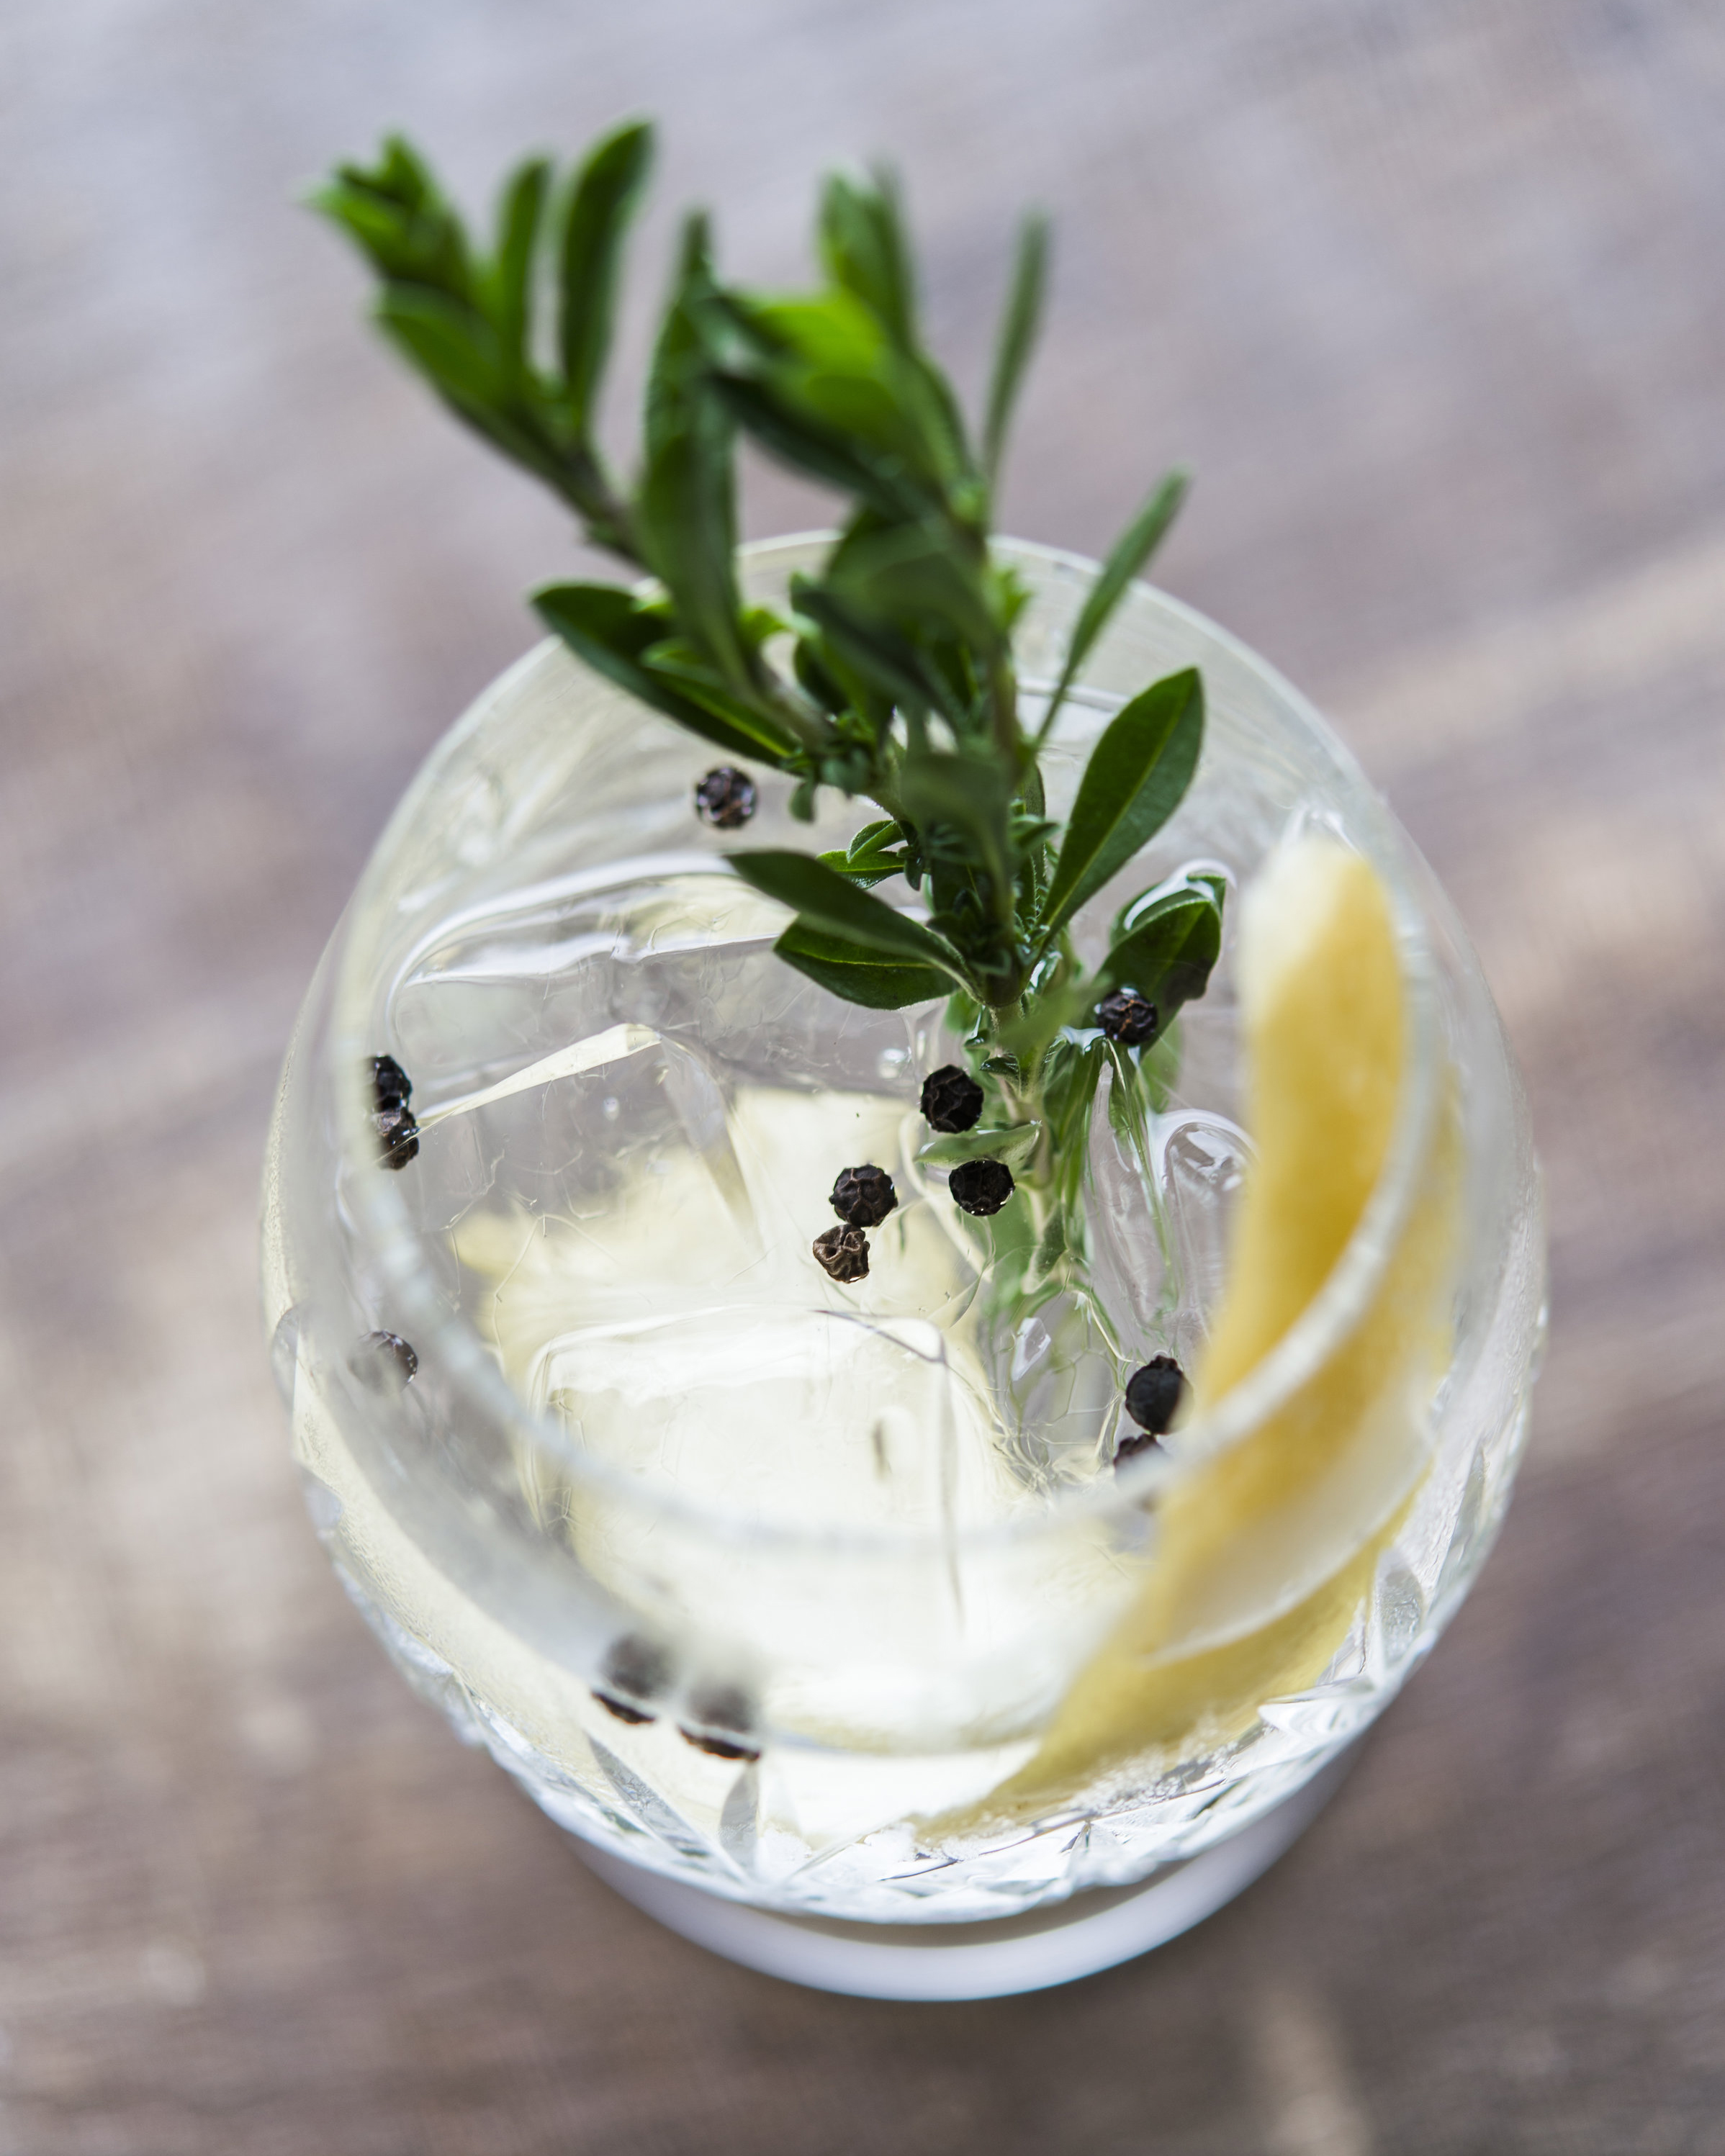 THE REMEDY   fresh tarragon, citrus oils, tonic syrup, charged water, vodka